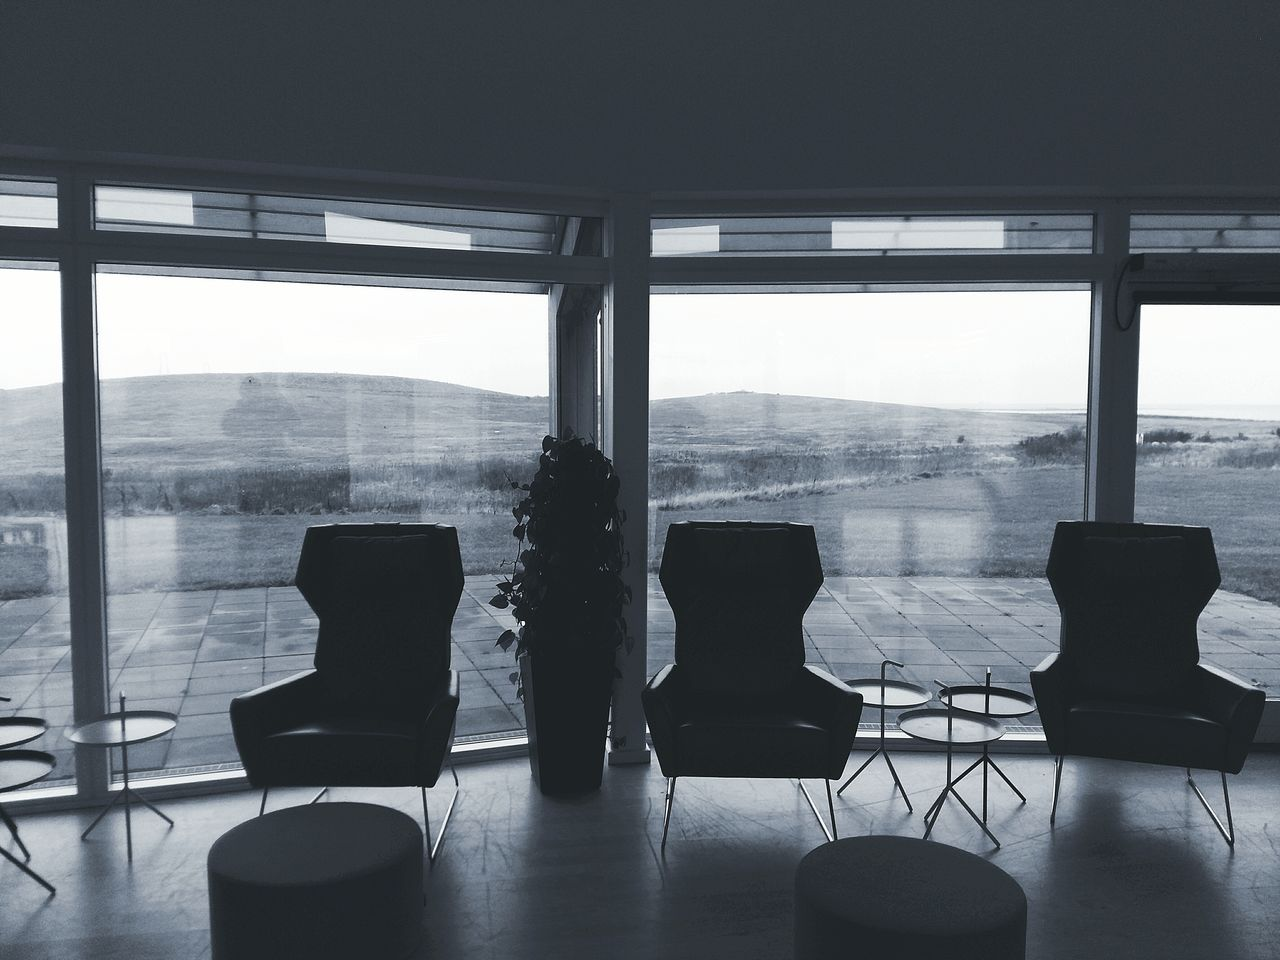 window, indoors, chair, empty, table, home interior, absence, no people, day, sofa, architecture, seat, home showcase interior, built structure, living room, sky